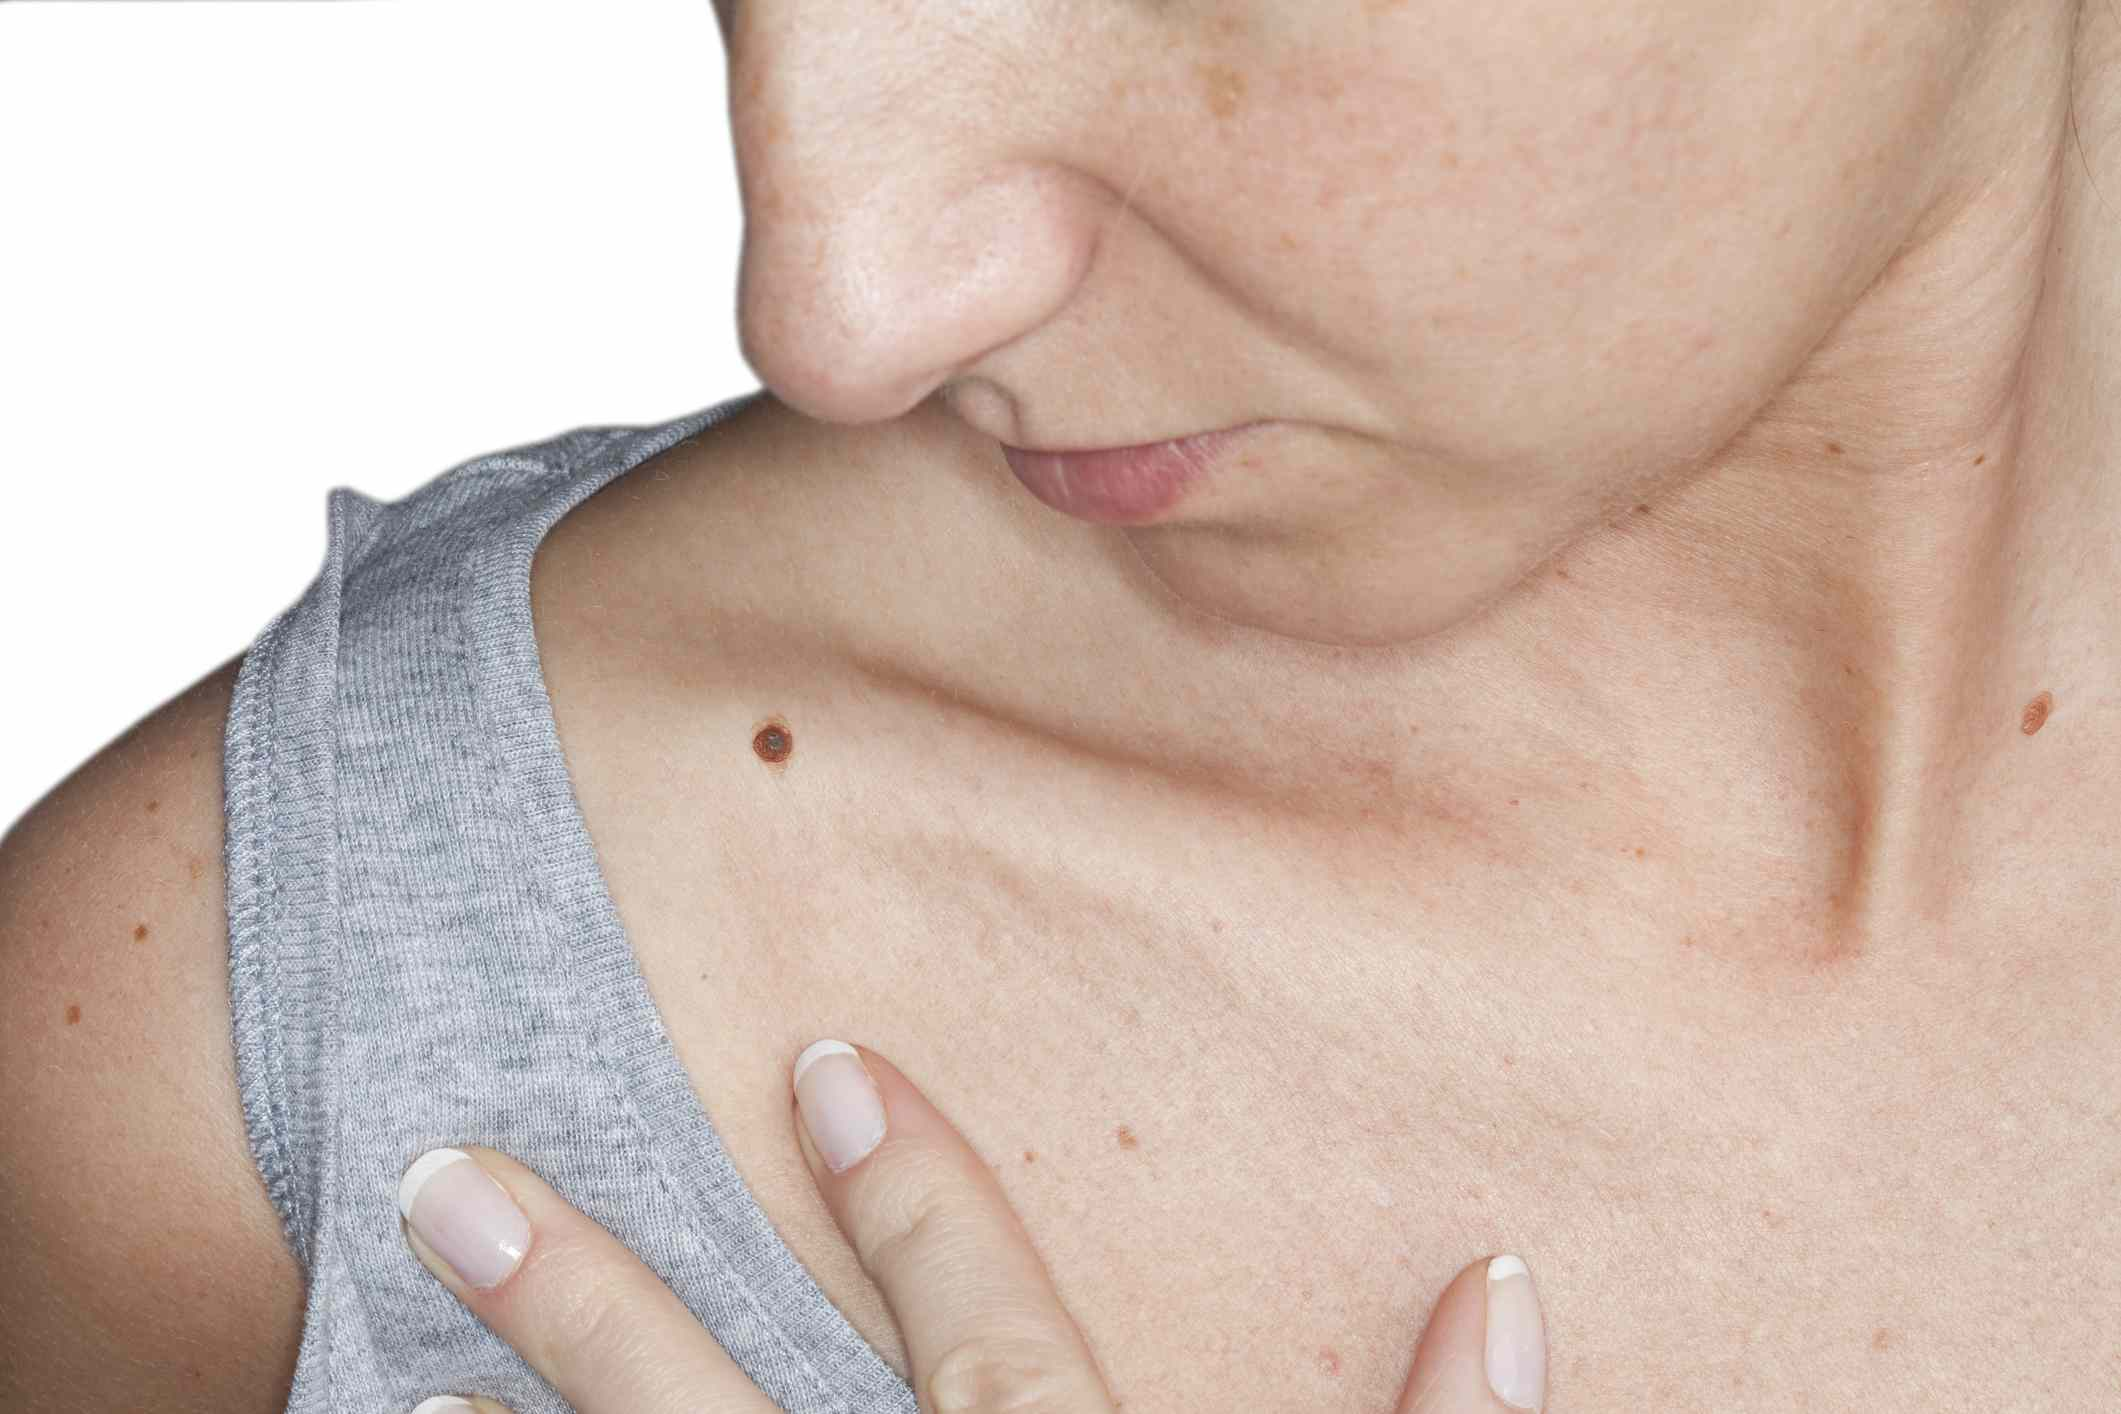 Woman looking down at mole on her shoulder